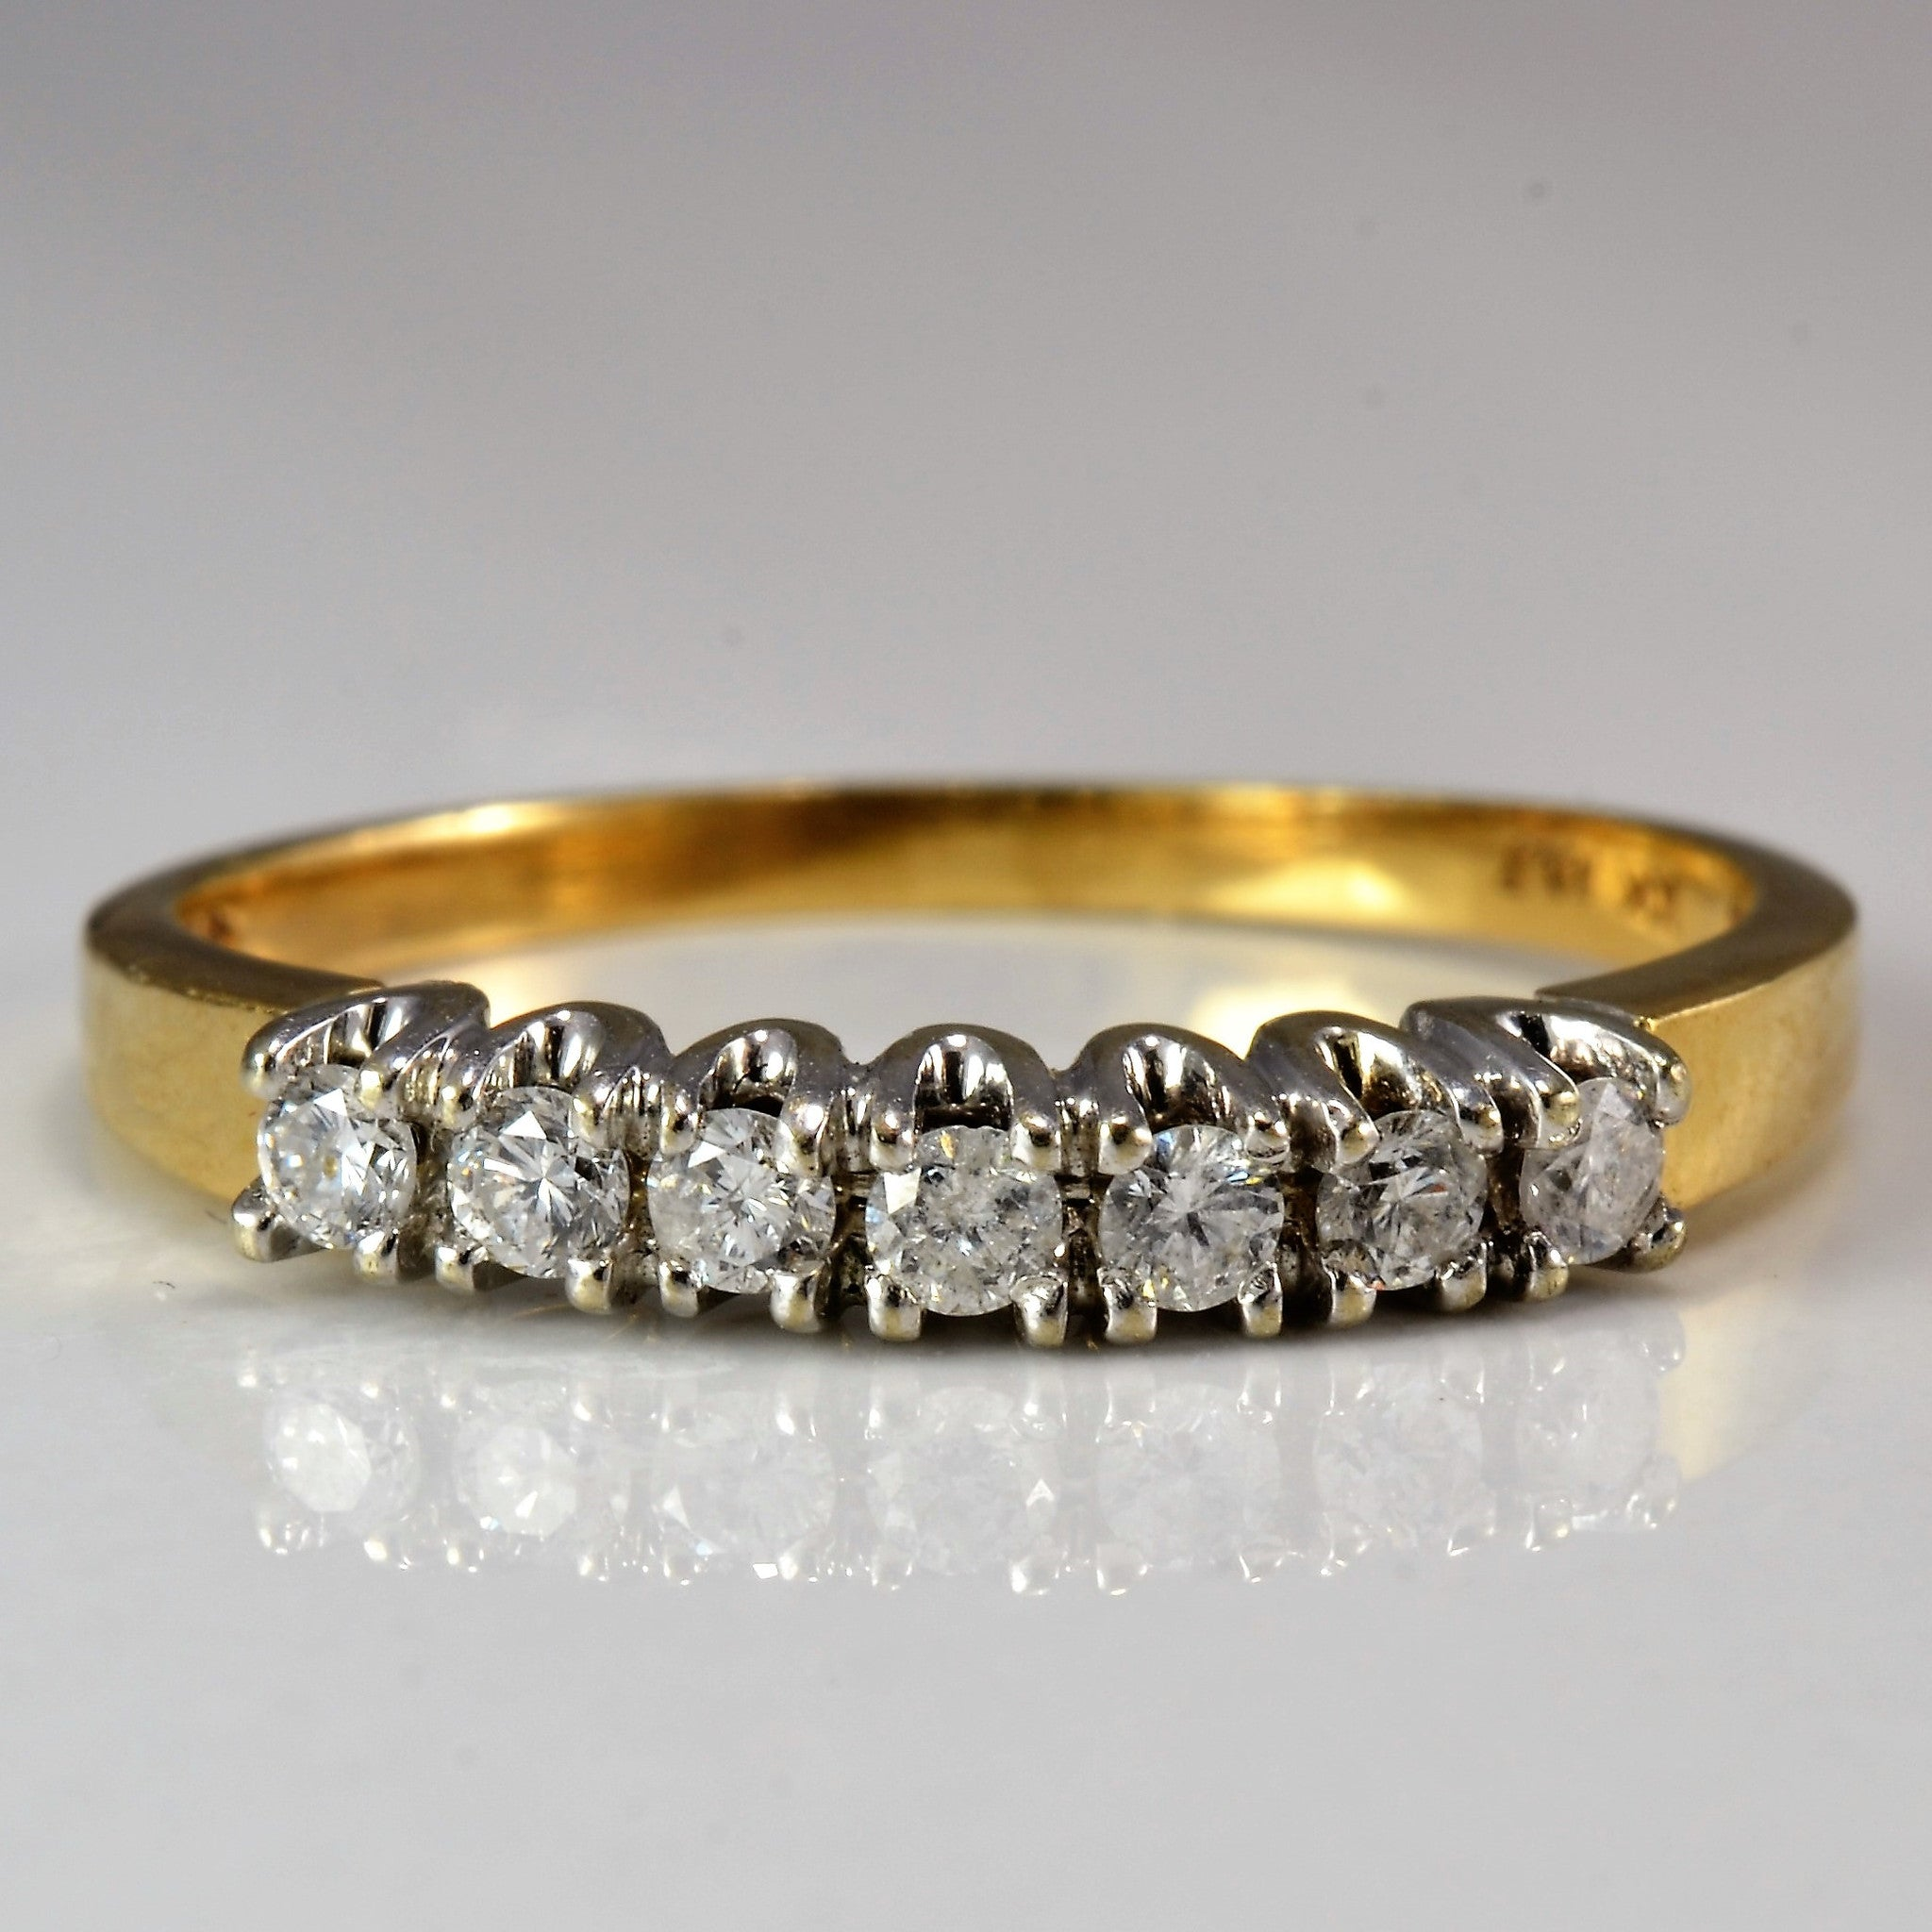 Classic Diamond Wedding Band | 0.21 ctw, SZ 7.25 |